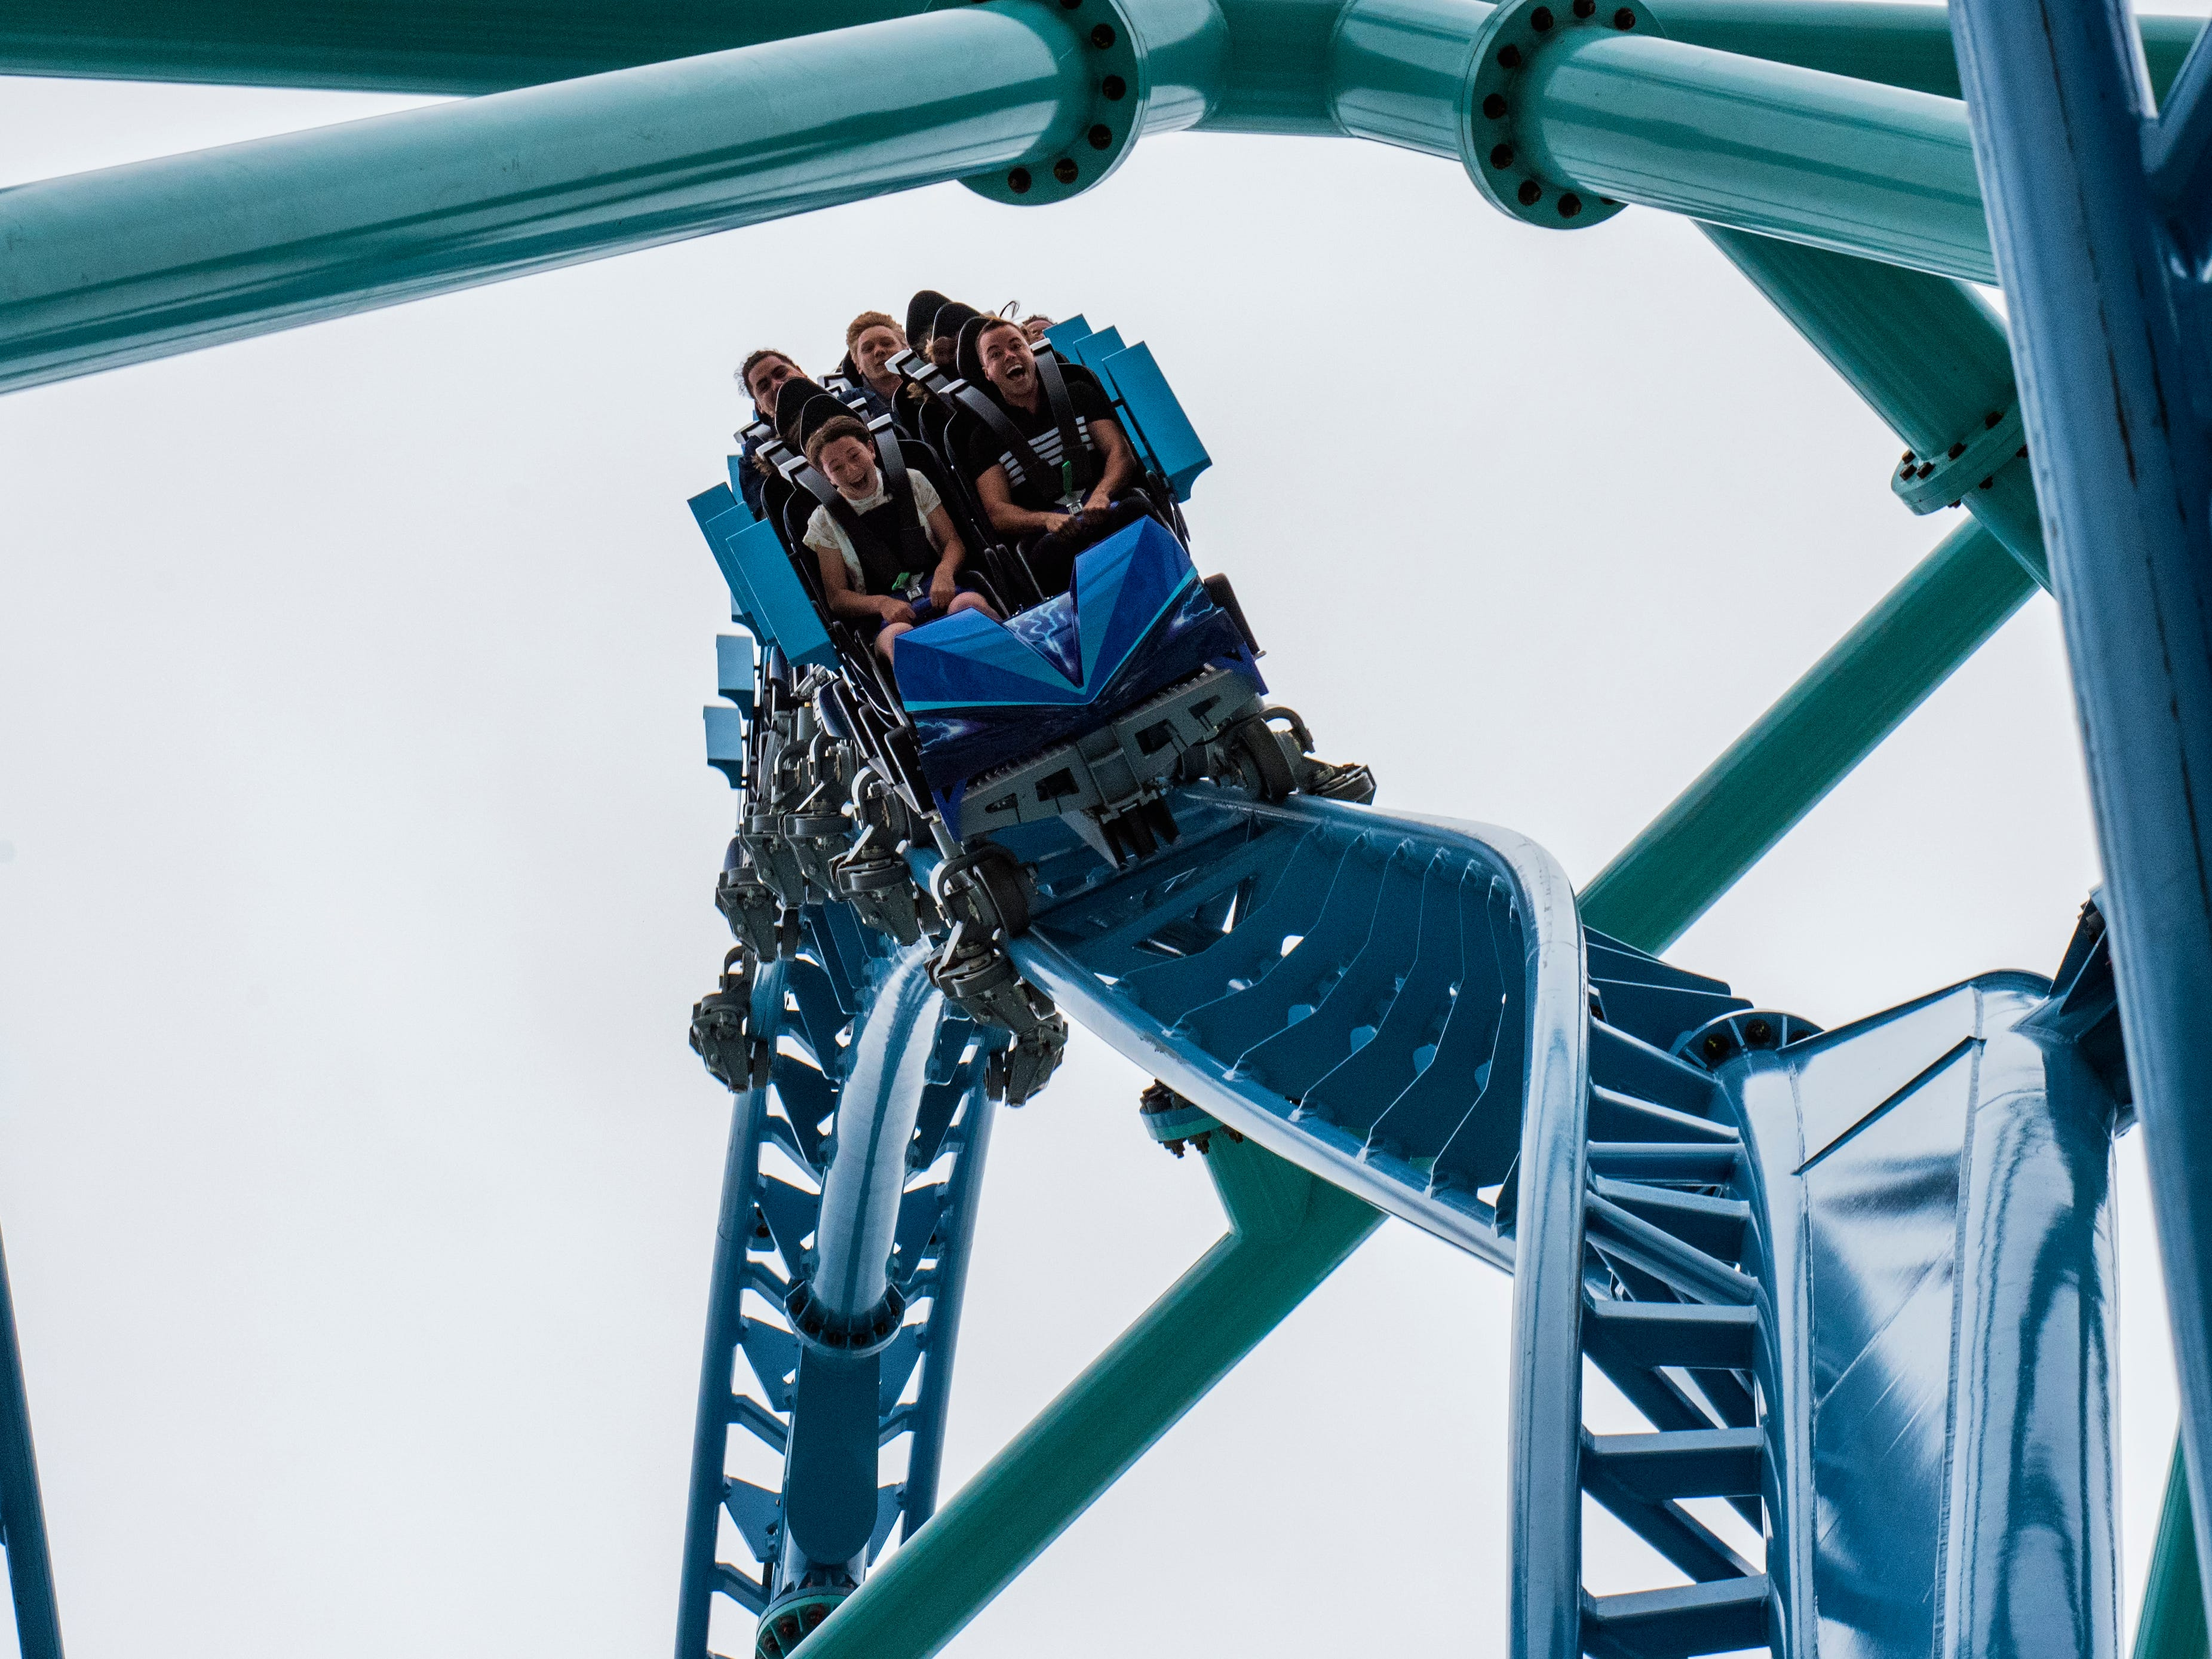 SeaWorld San Diego's new Electric Eel roller coaster opened in 2018.